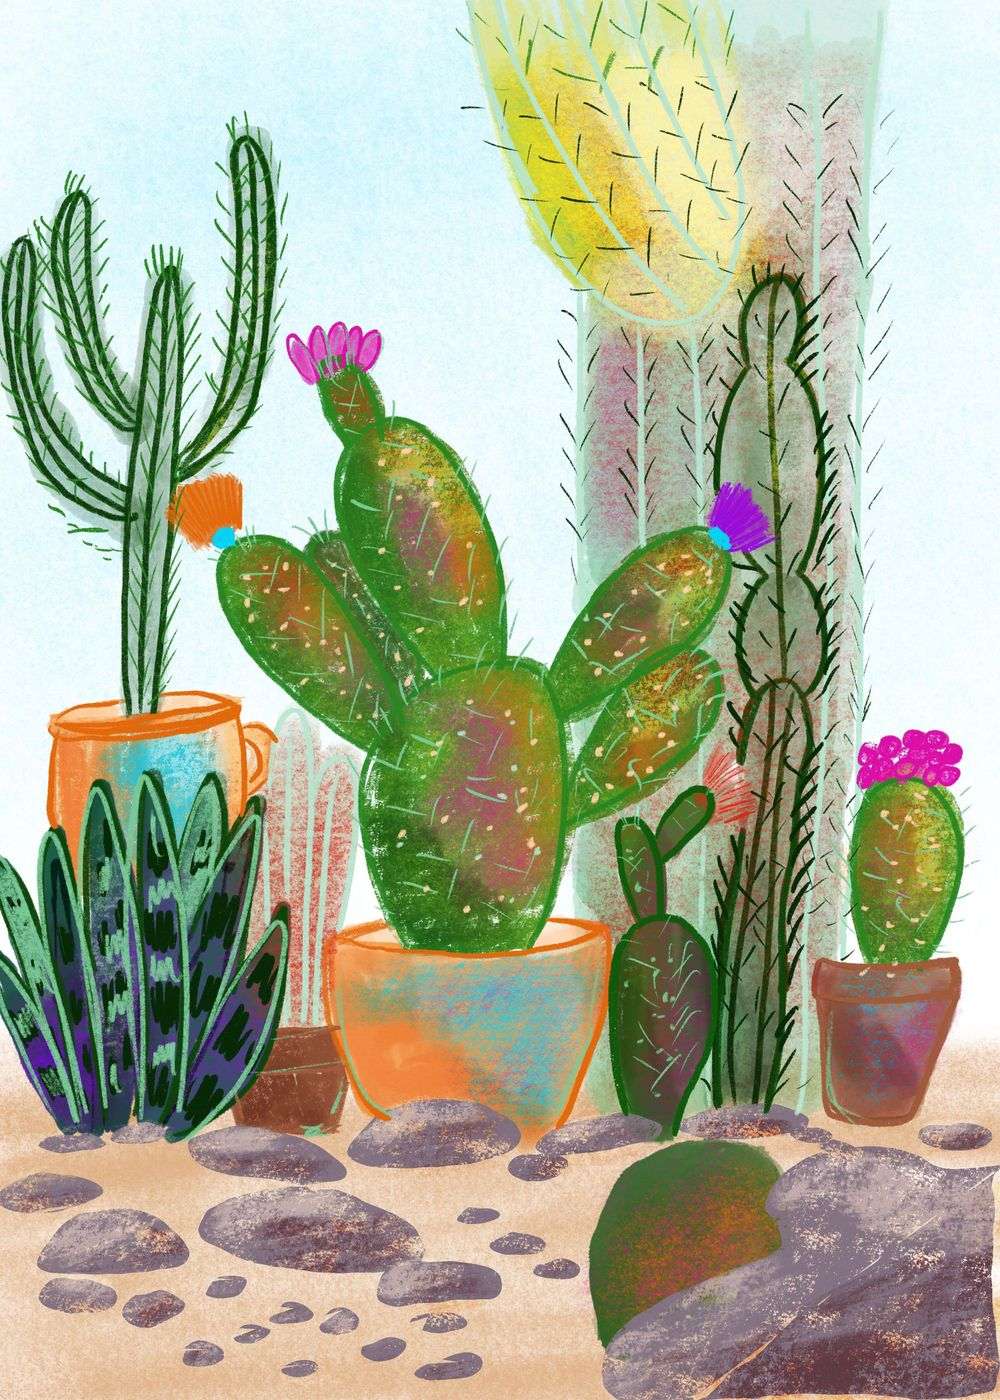 Cacti Garden - image 1 - student project